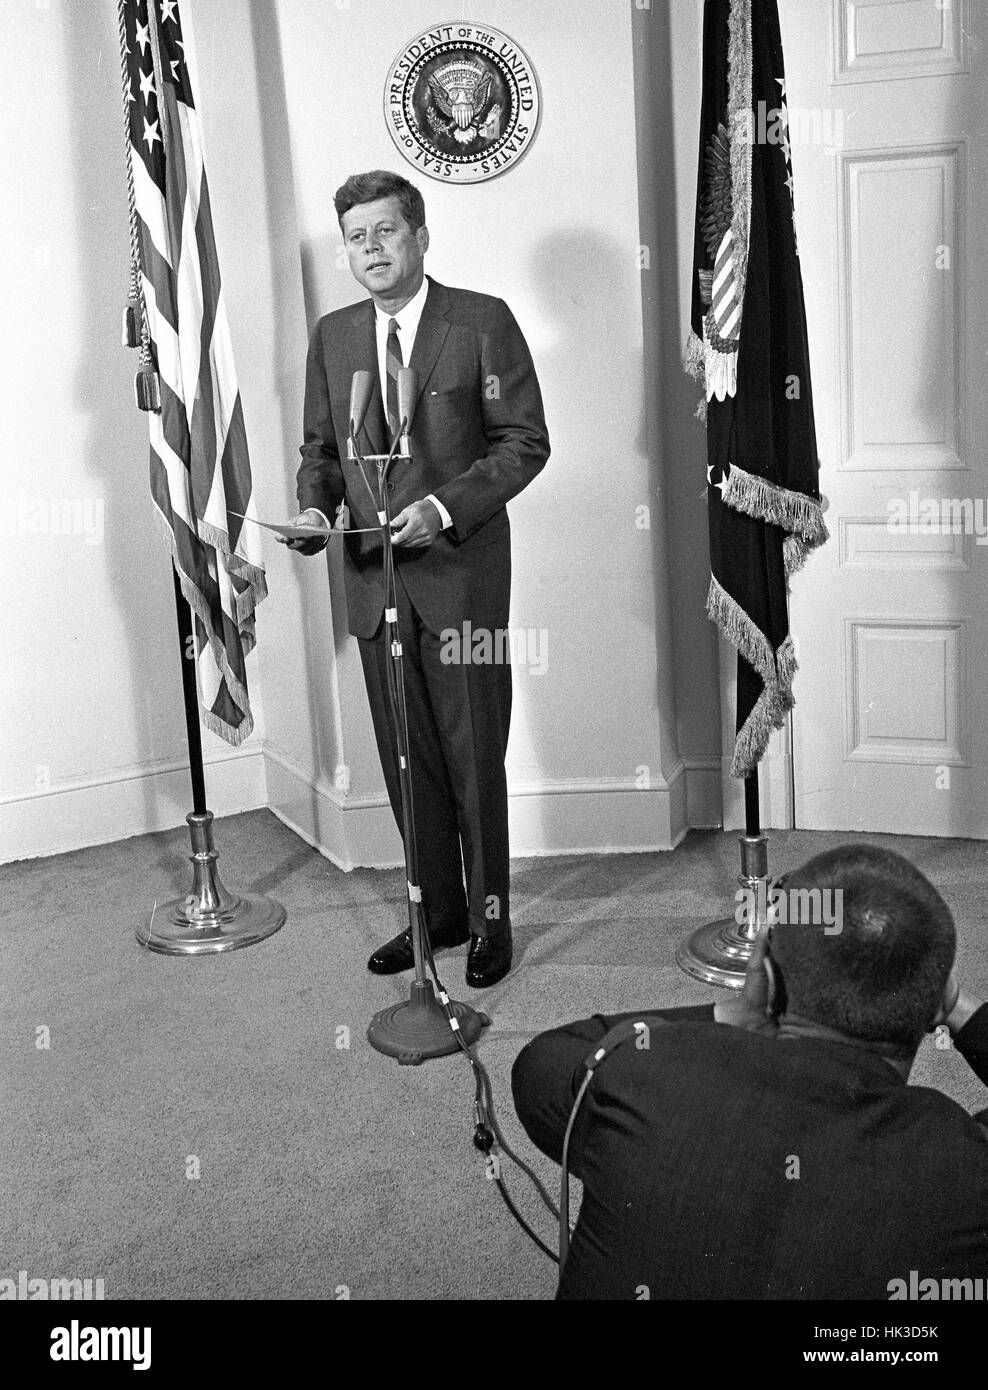 A photographer captures the moment as United States President John F. Kennedy announces the appointment of W. Willard - Stock Image